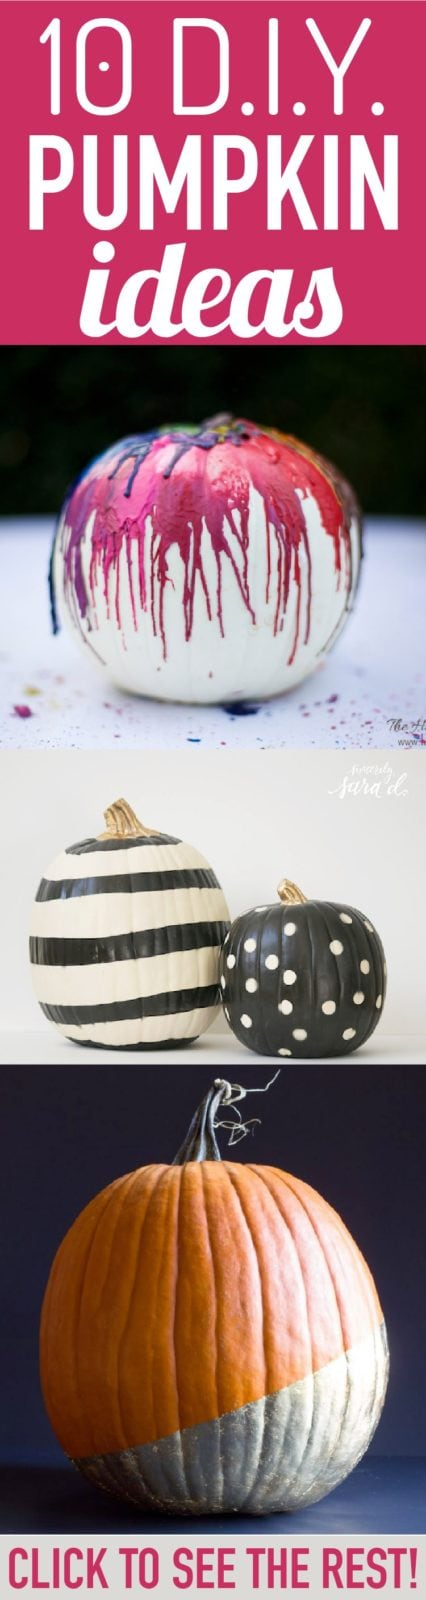 Love, love, love all of these cute pumpkin ideas. So great to see pumpkin ideas that don't all involve carving. I love the 3rd and 7th ideas most!